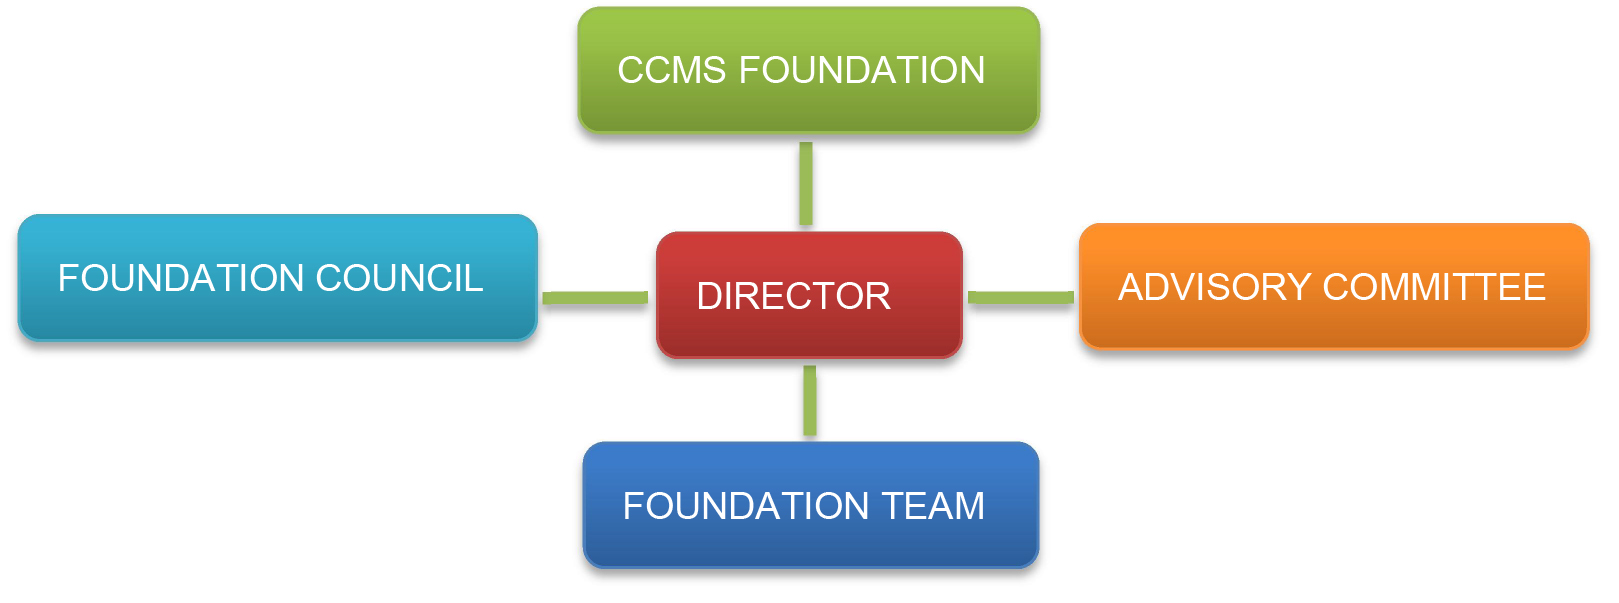 CCMS Governance Structure